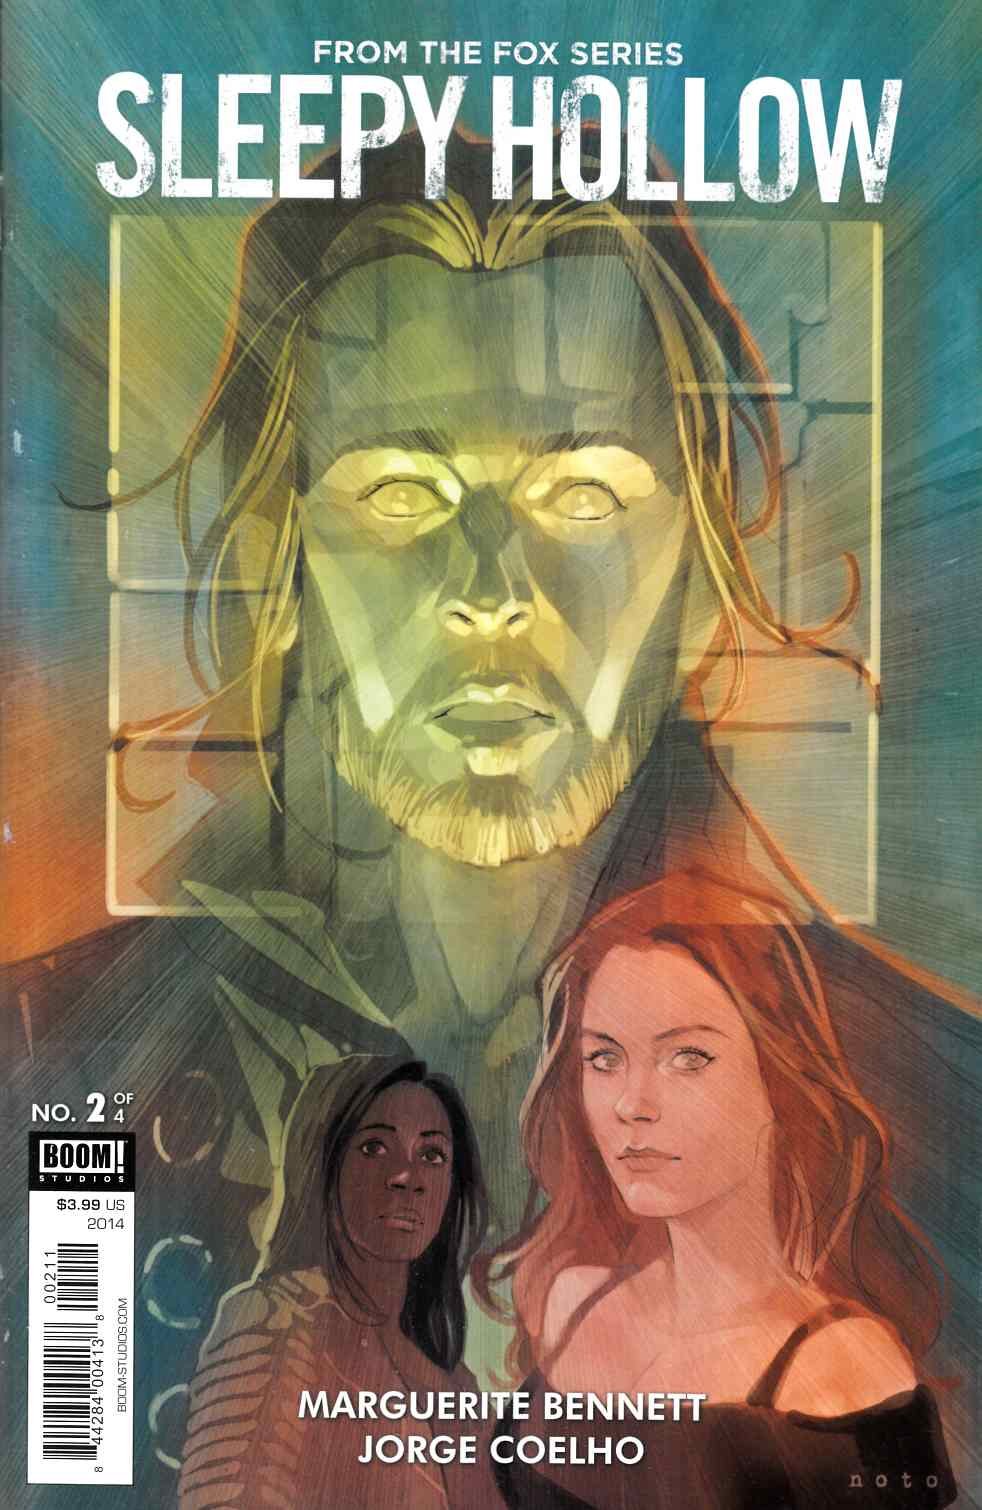 Sleepy Hollow #2 [Boom Comic]